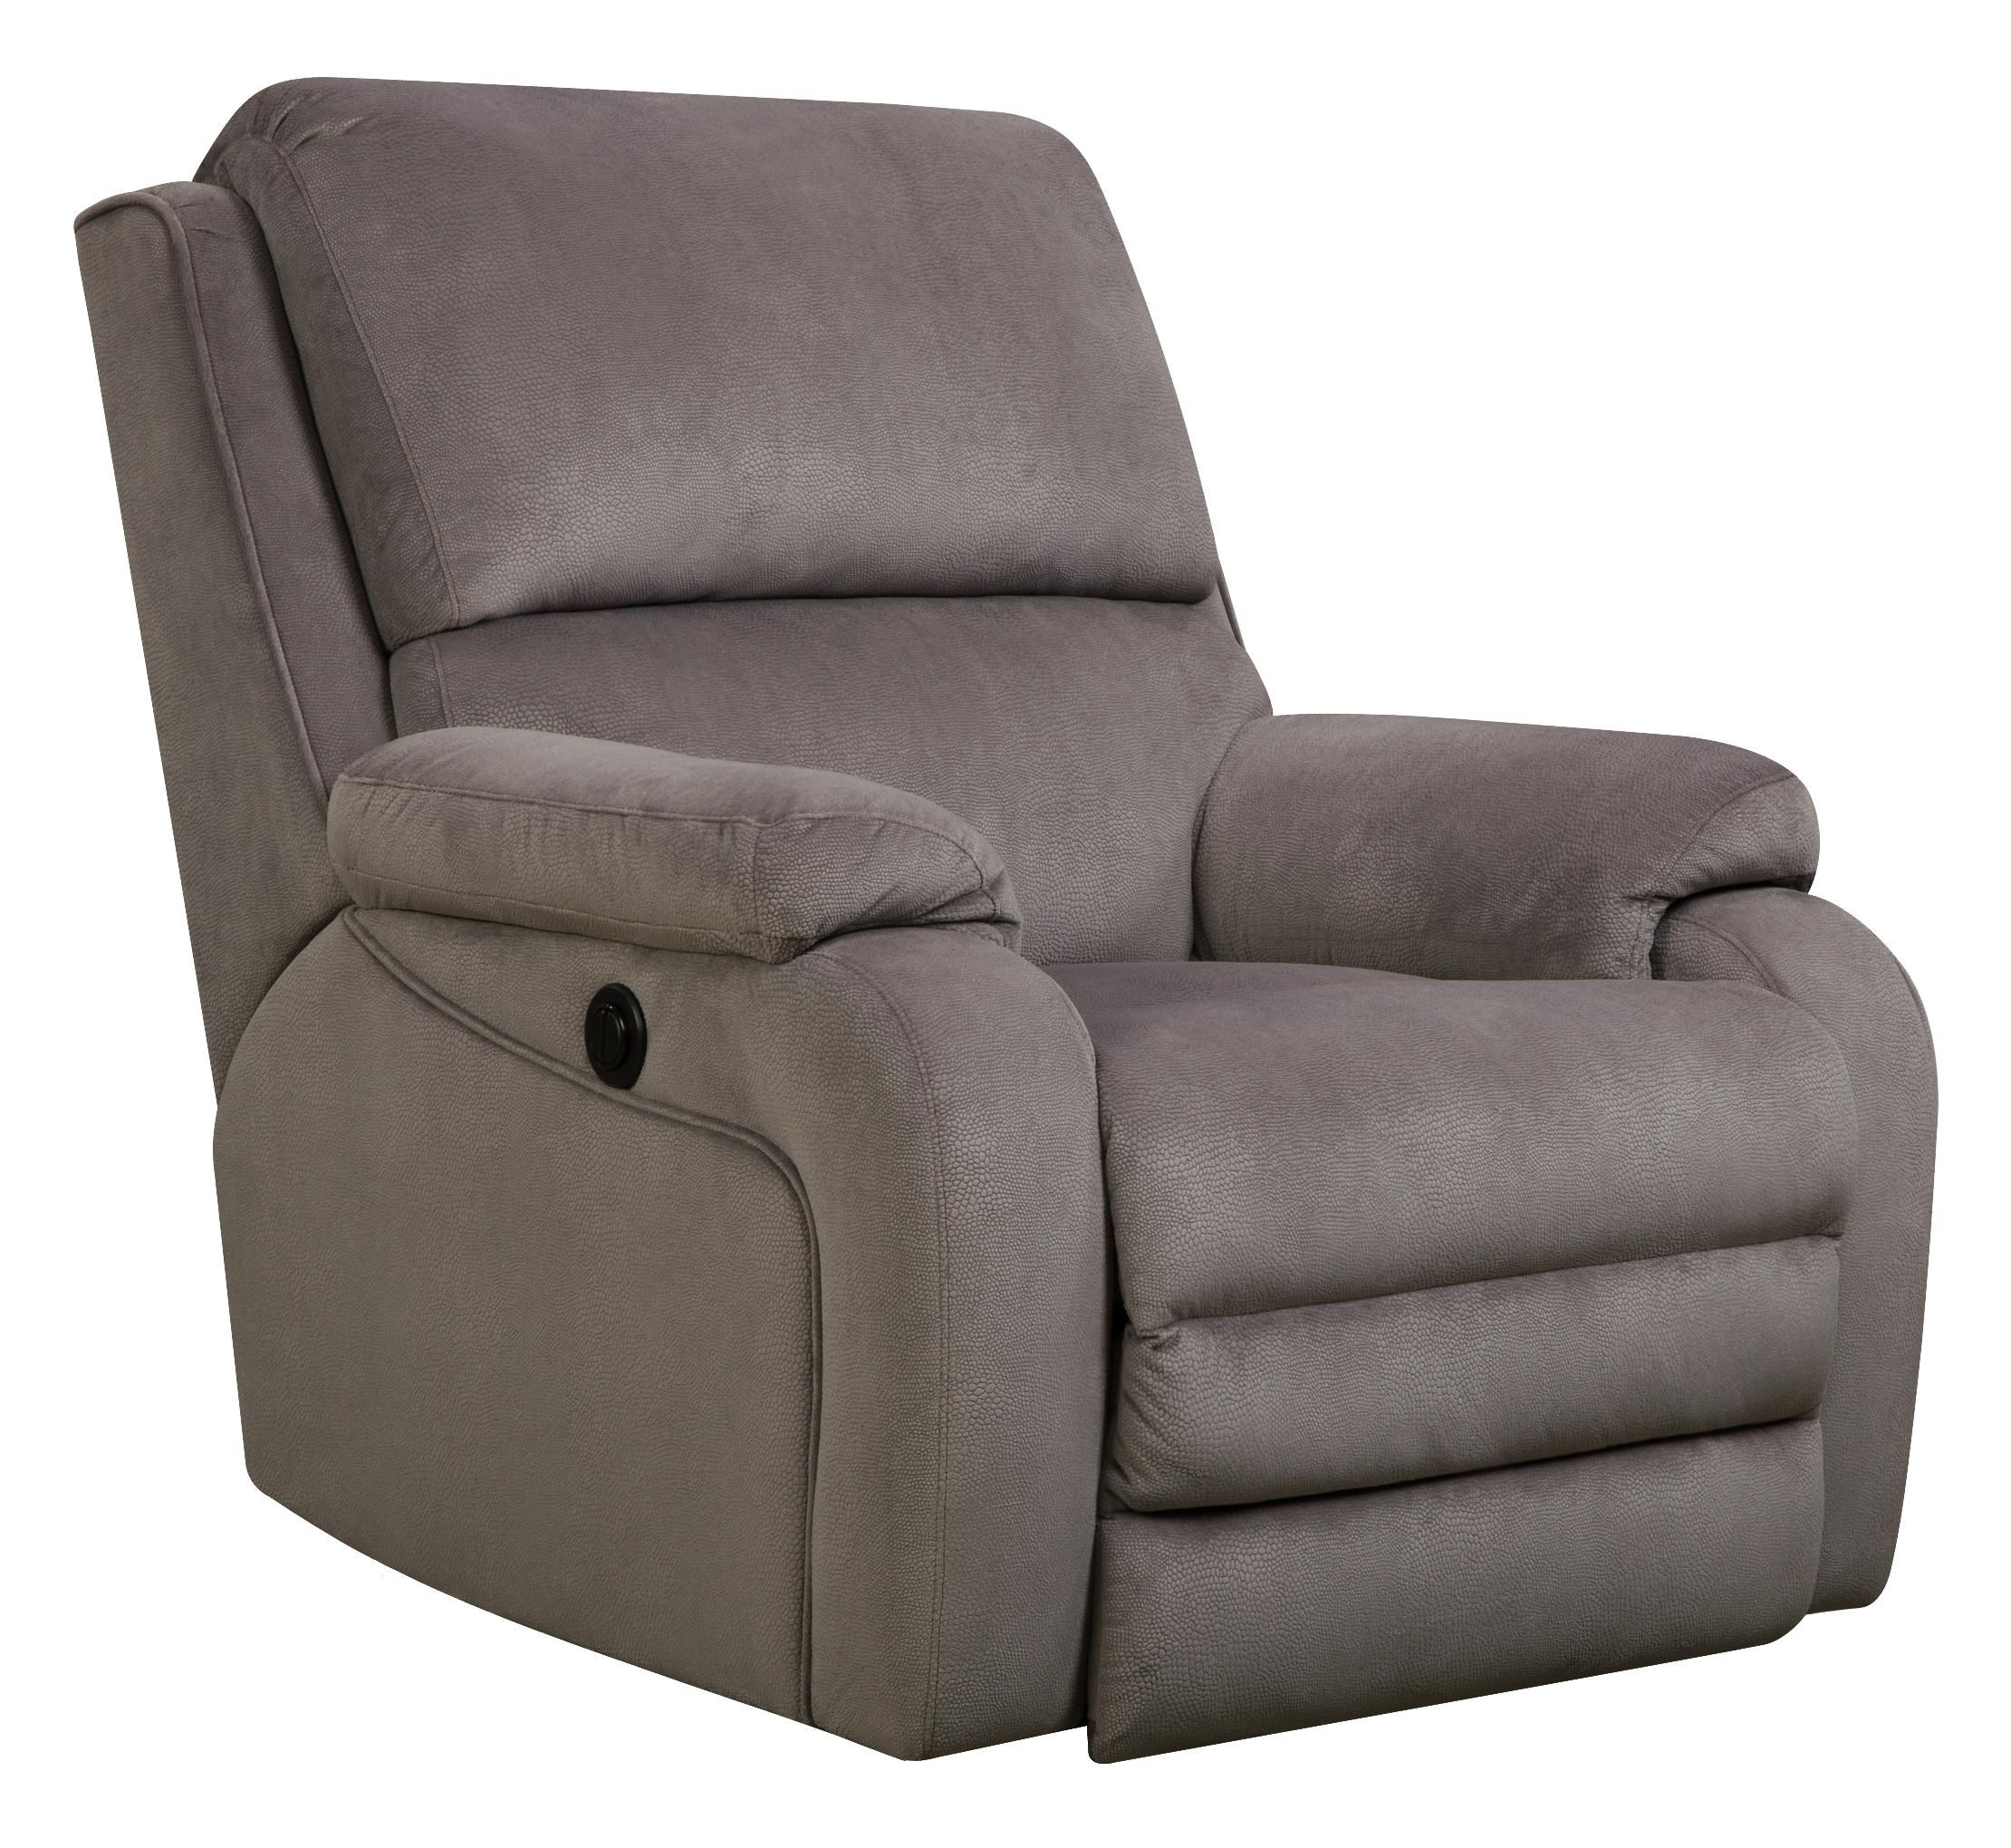 Recliner Shown May Not Represent Exact Features Indicated  sc 1 st  Johnny Janosik & Southern Motion Recliners Ovation Swivel Rocker Recliner in Casual ... islam-shia.org